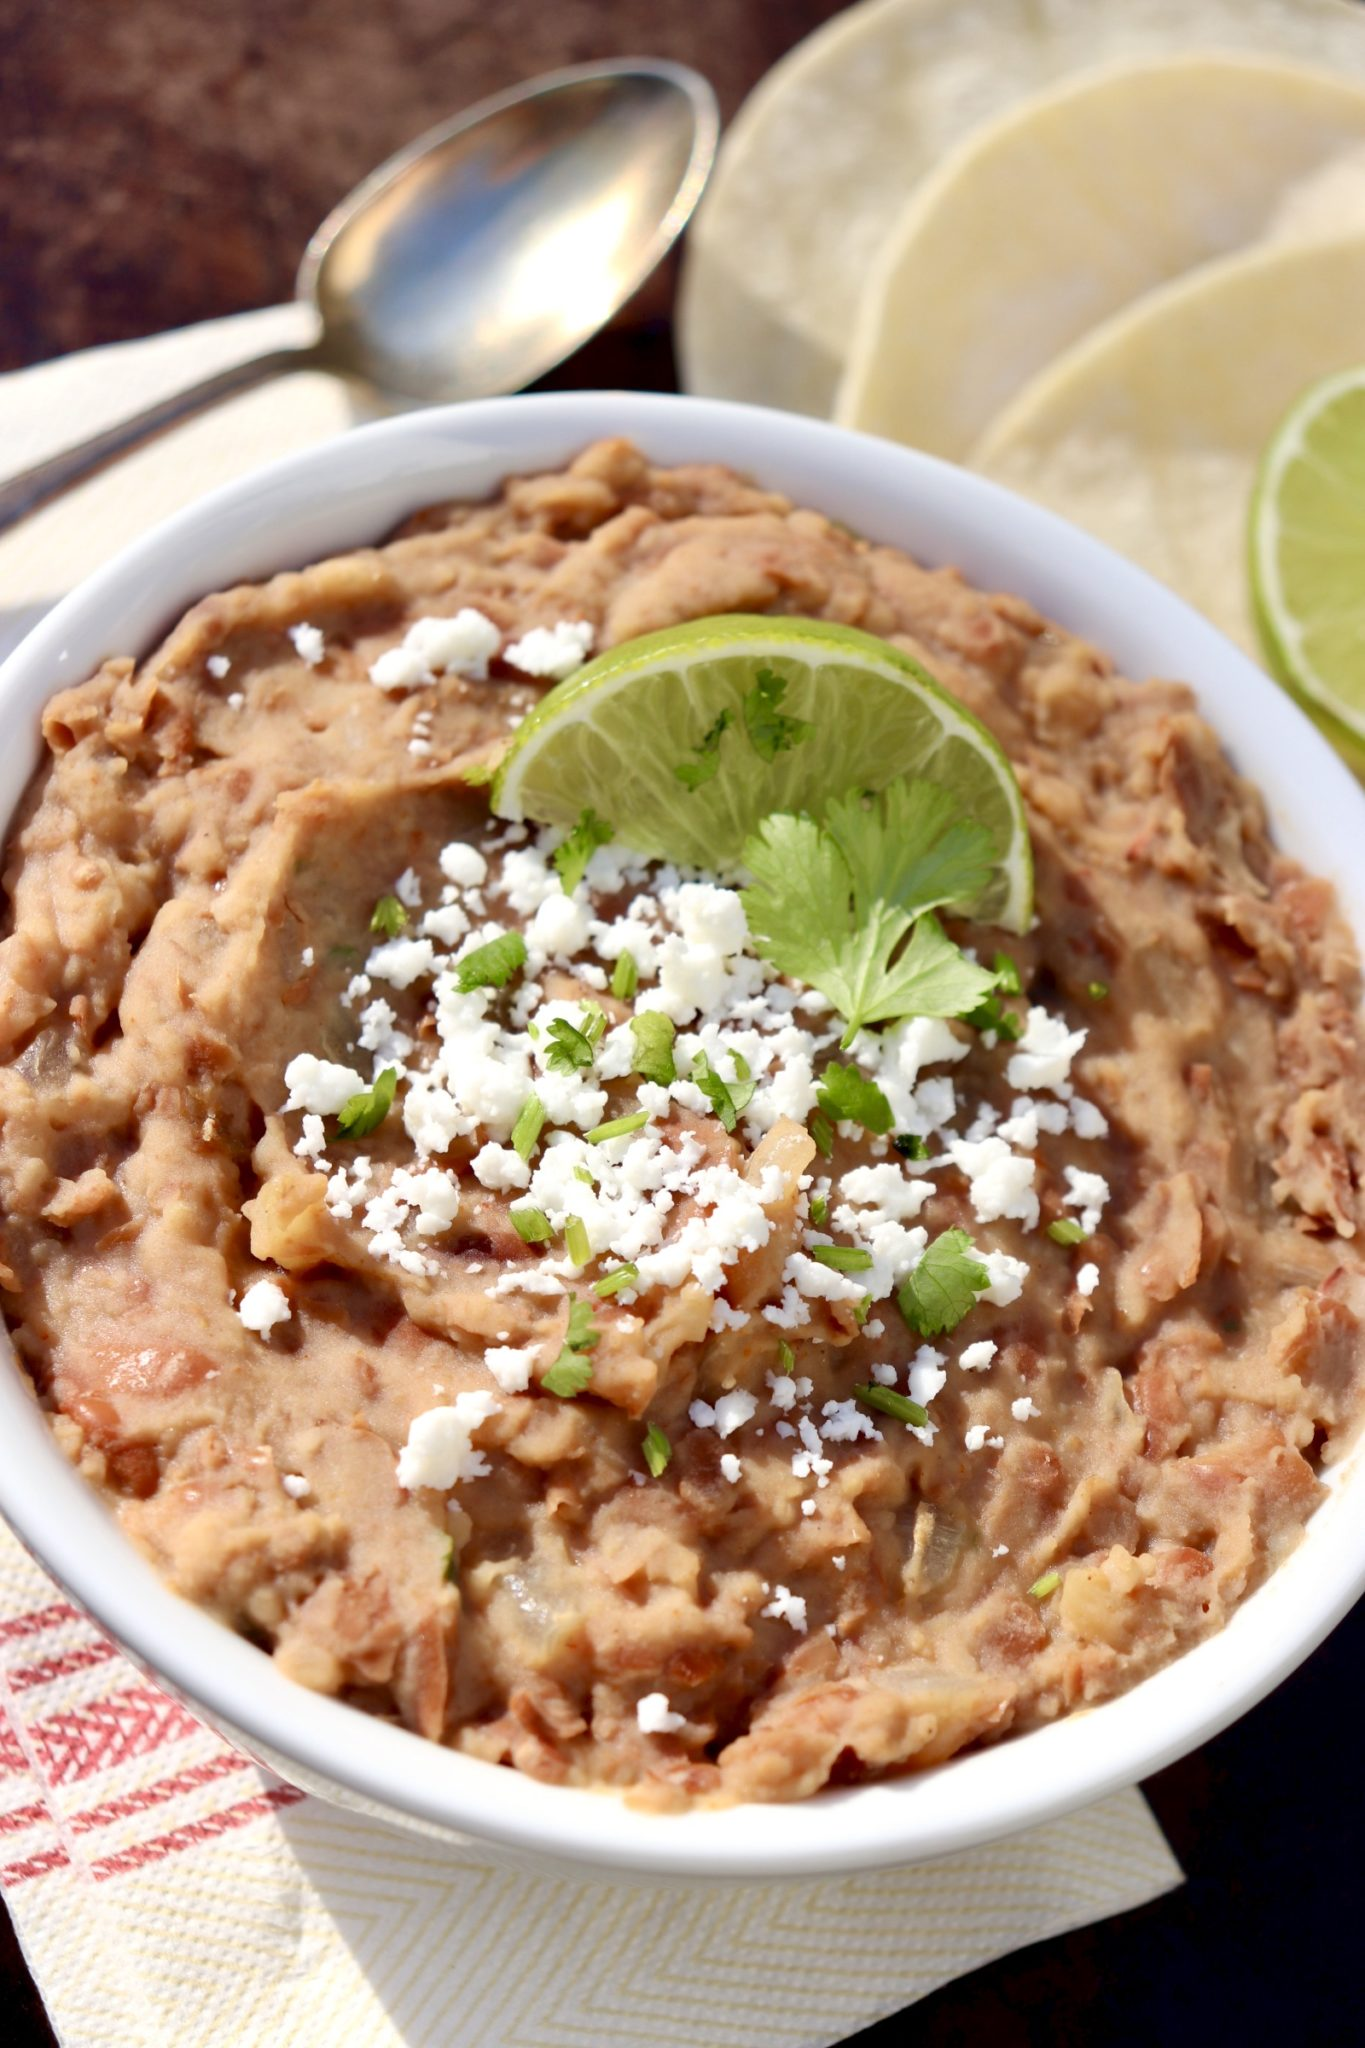 Quick & easy to make with pantry staples, loaded with healthy, plant-based protein, and the flavorful foundation of one of my go-to speedy dinners!